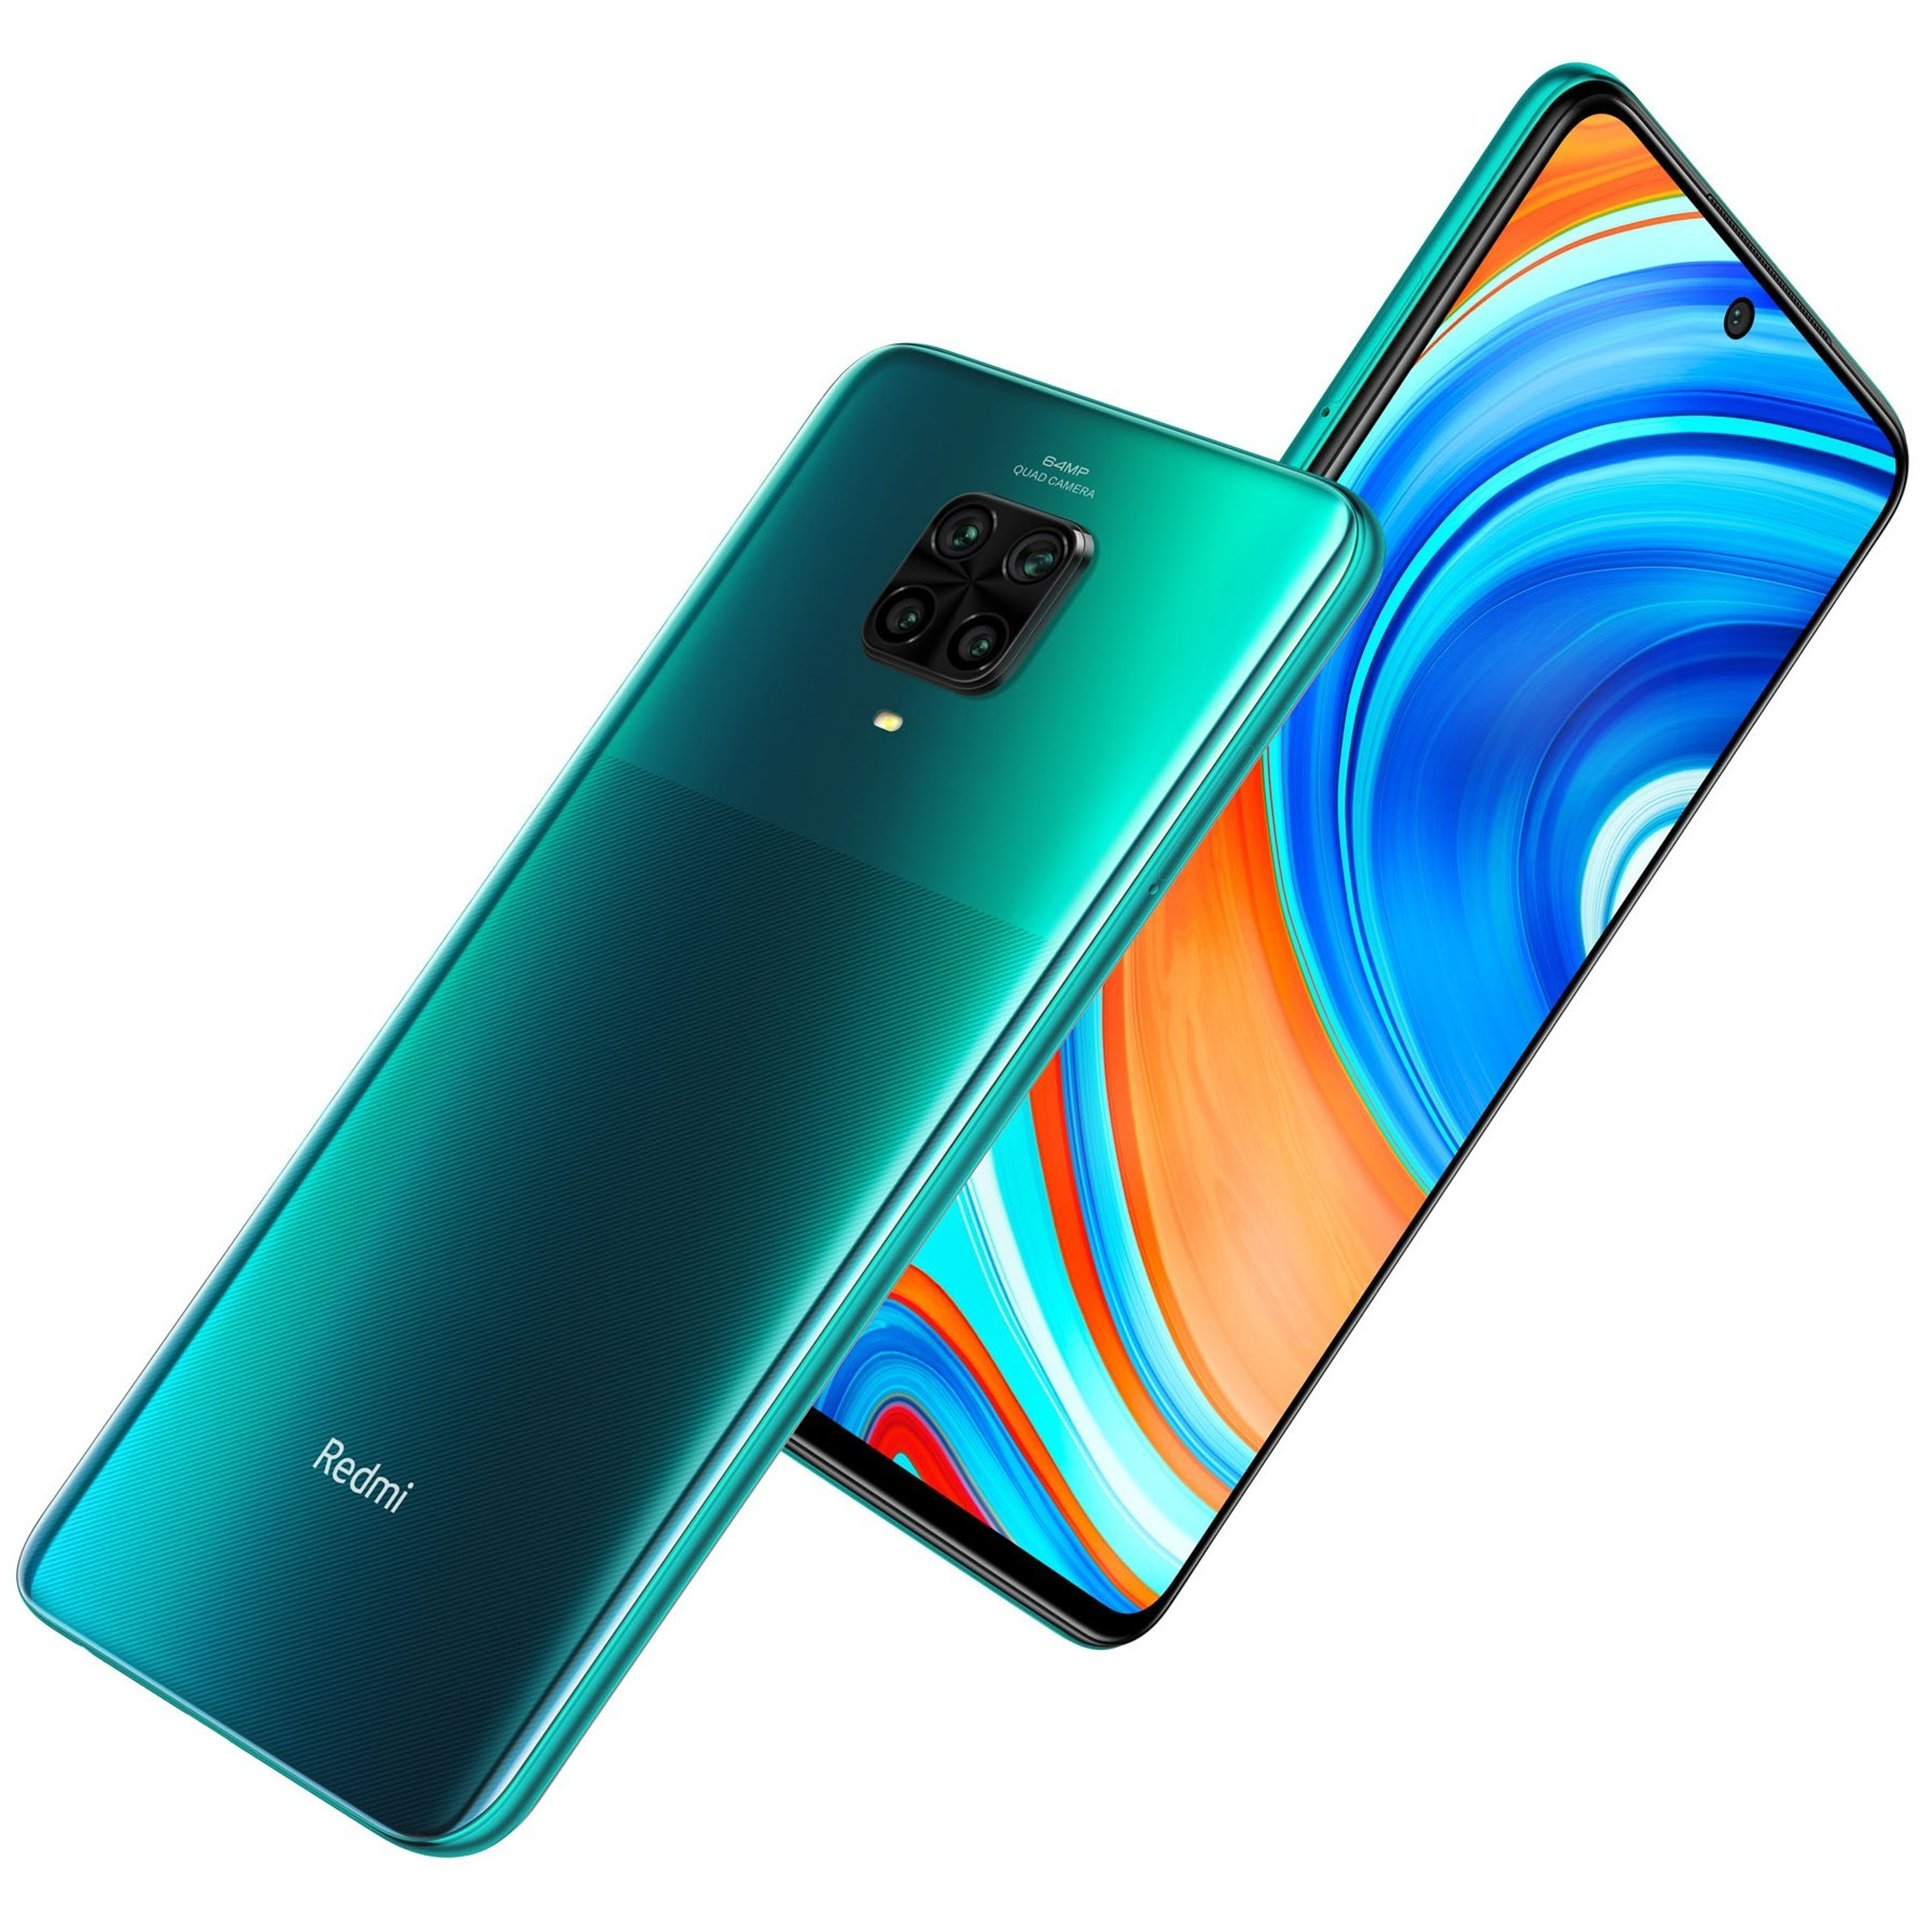 Xiaomi Redmi Note 9 Pro 6GB/64GB Dual Sim - Tropical Green : Mobile